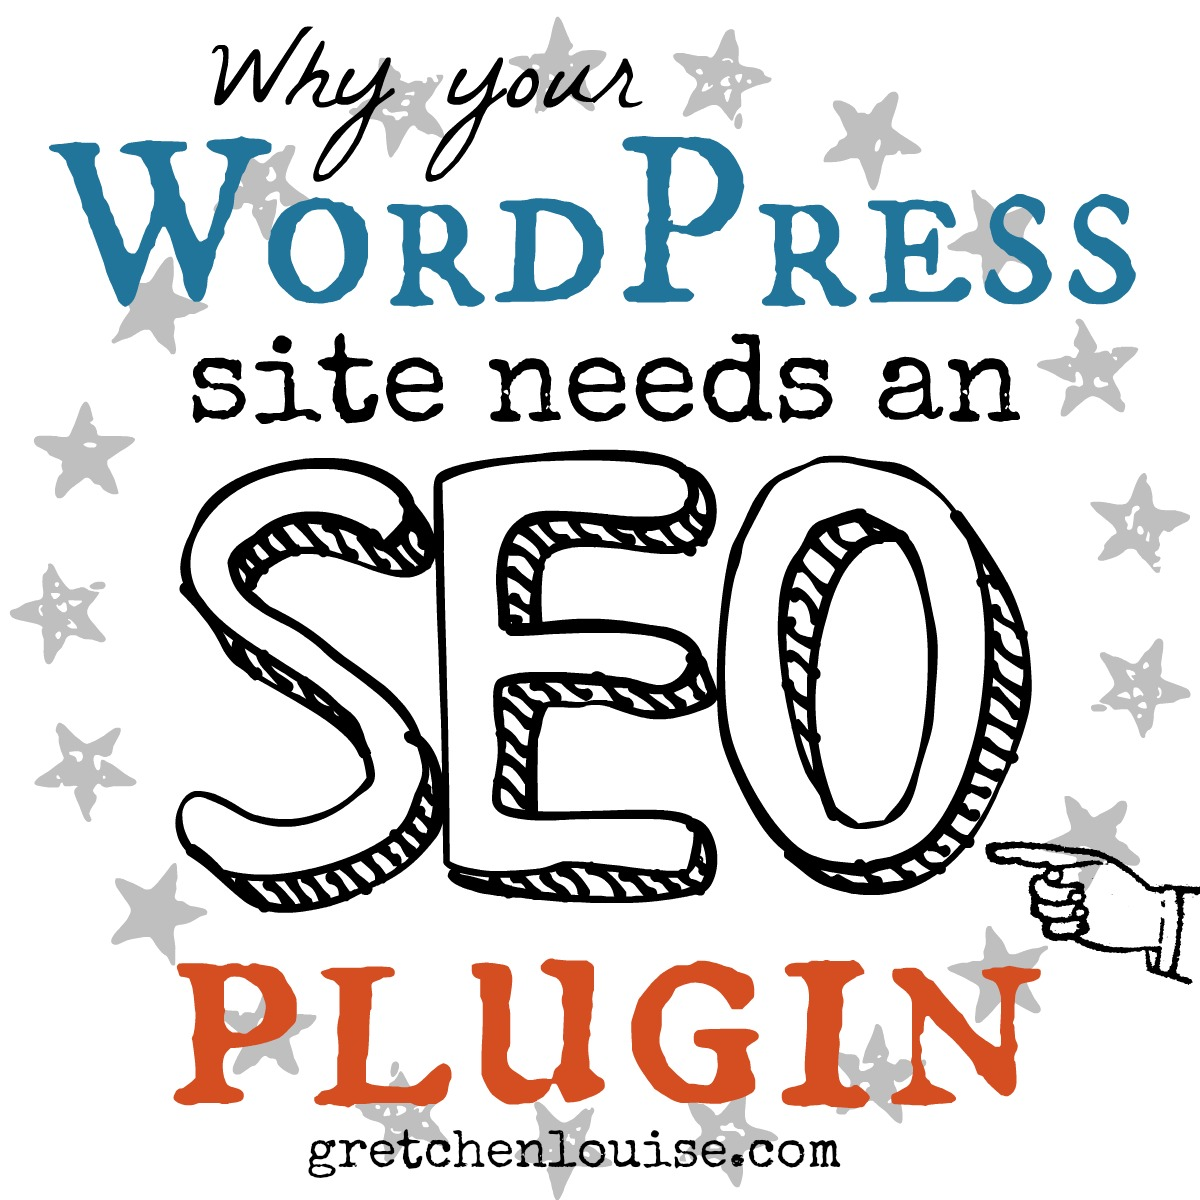 Why Your WordPress Site Needs an SEO Plugin